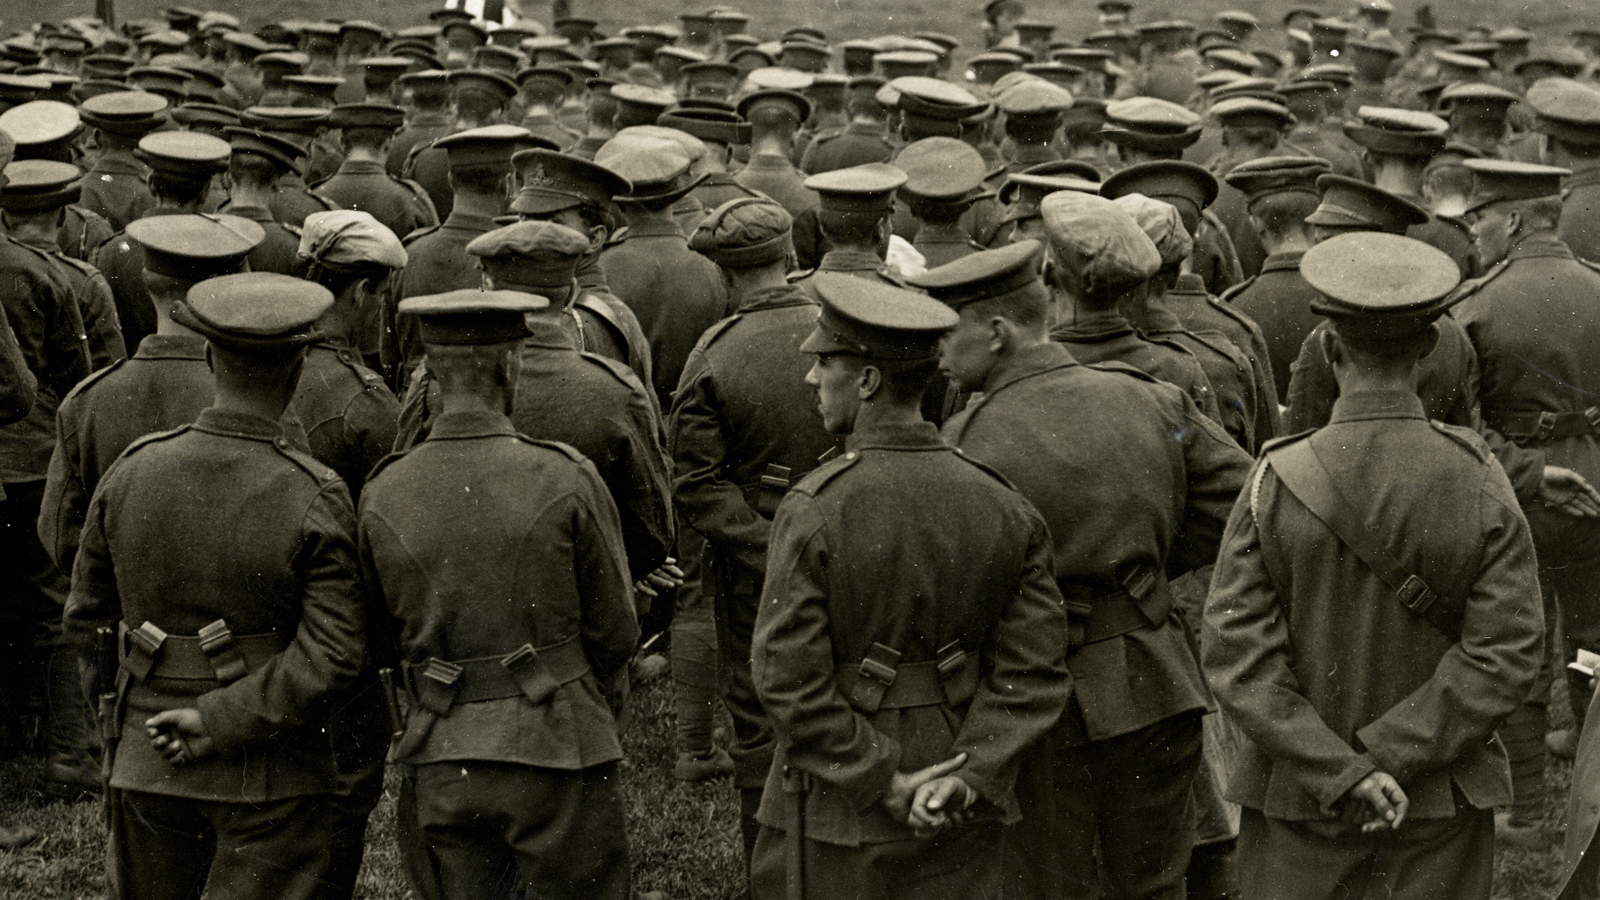 Photograph showing a large group of soldiers attending a church service in a field